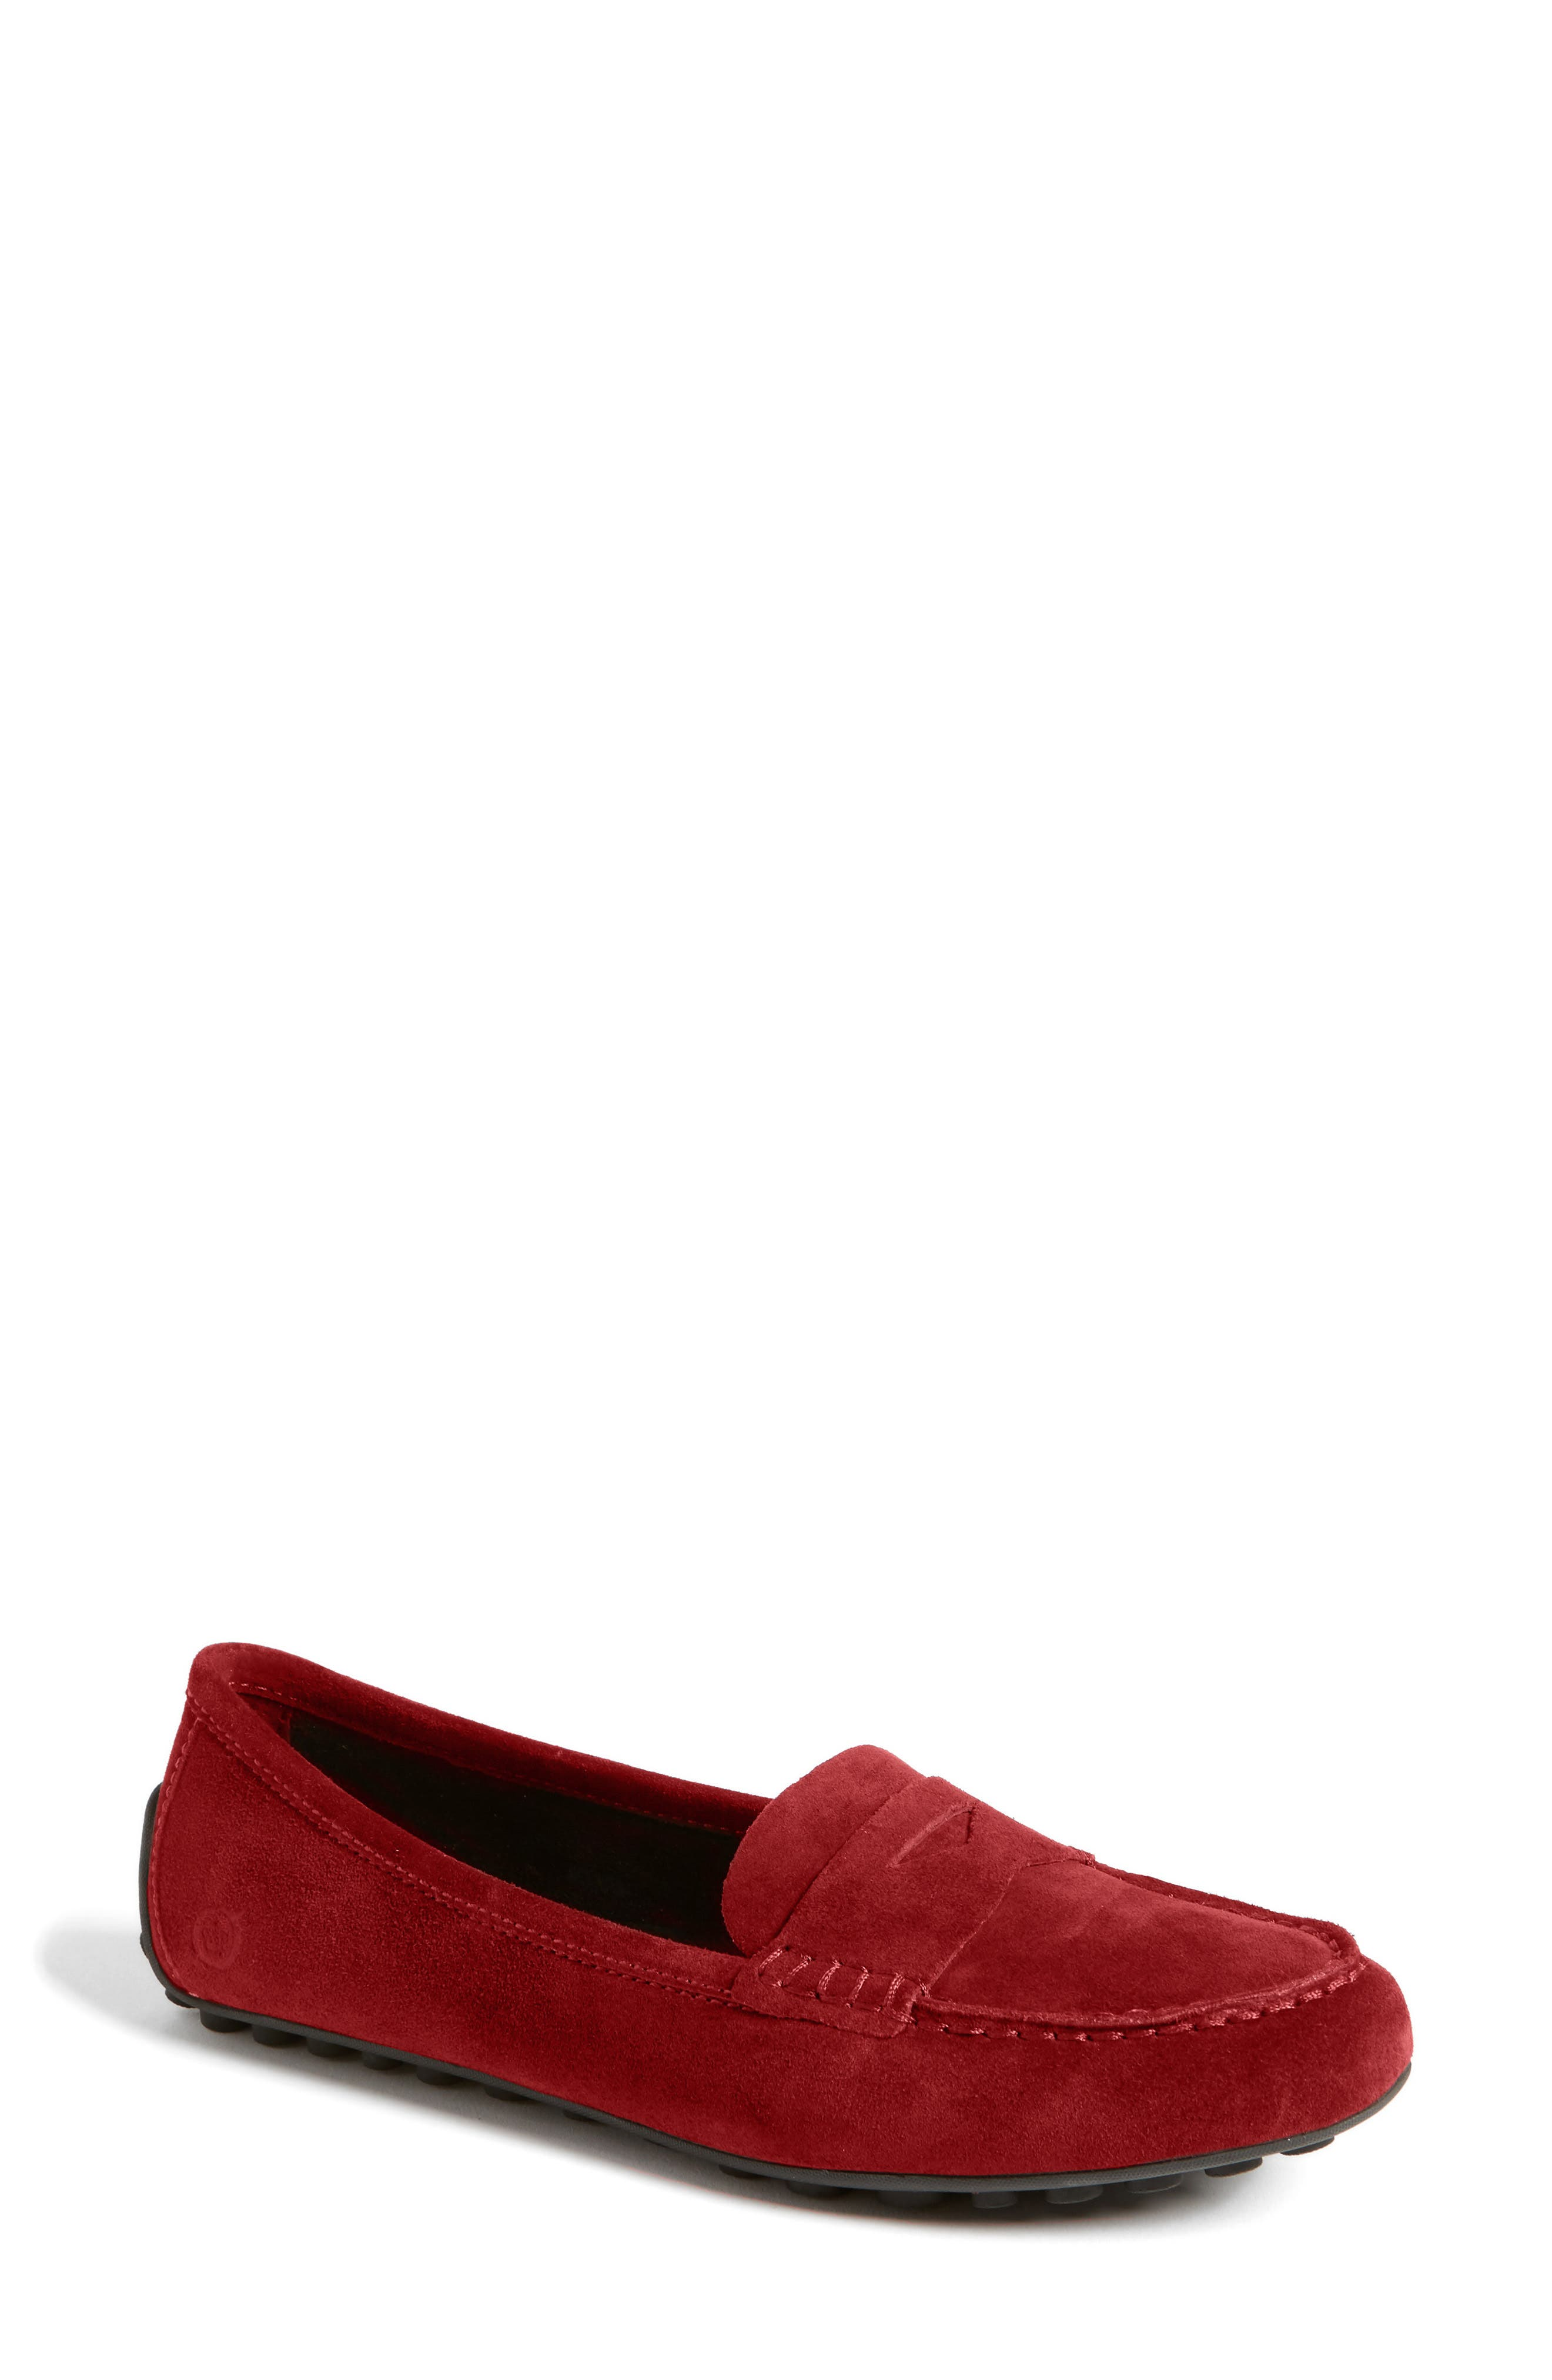 BØRN,                             Malena Penny Loafer,                             Main thumbnail 1, color,                             RED SUEDE